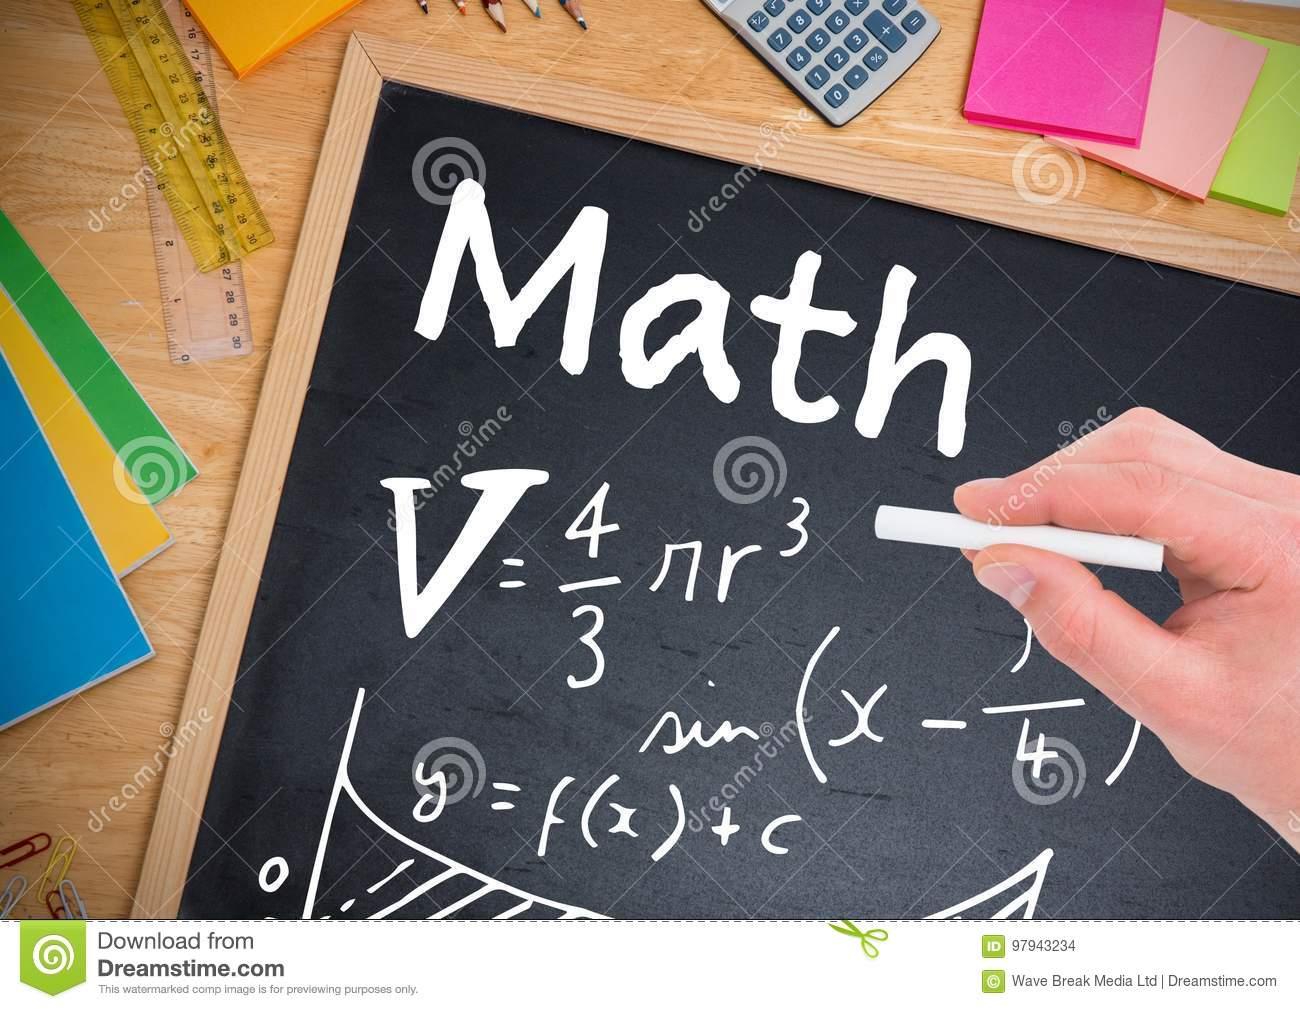 Worksheets Images Only Math beautiful only math pictures inspiration worksheets modopol com stunning gallery com